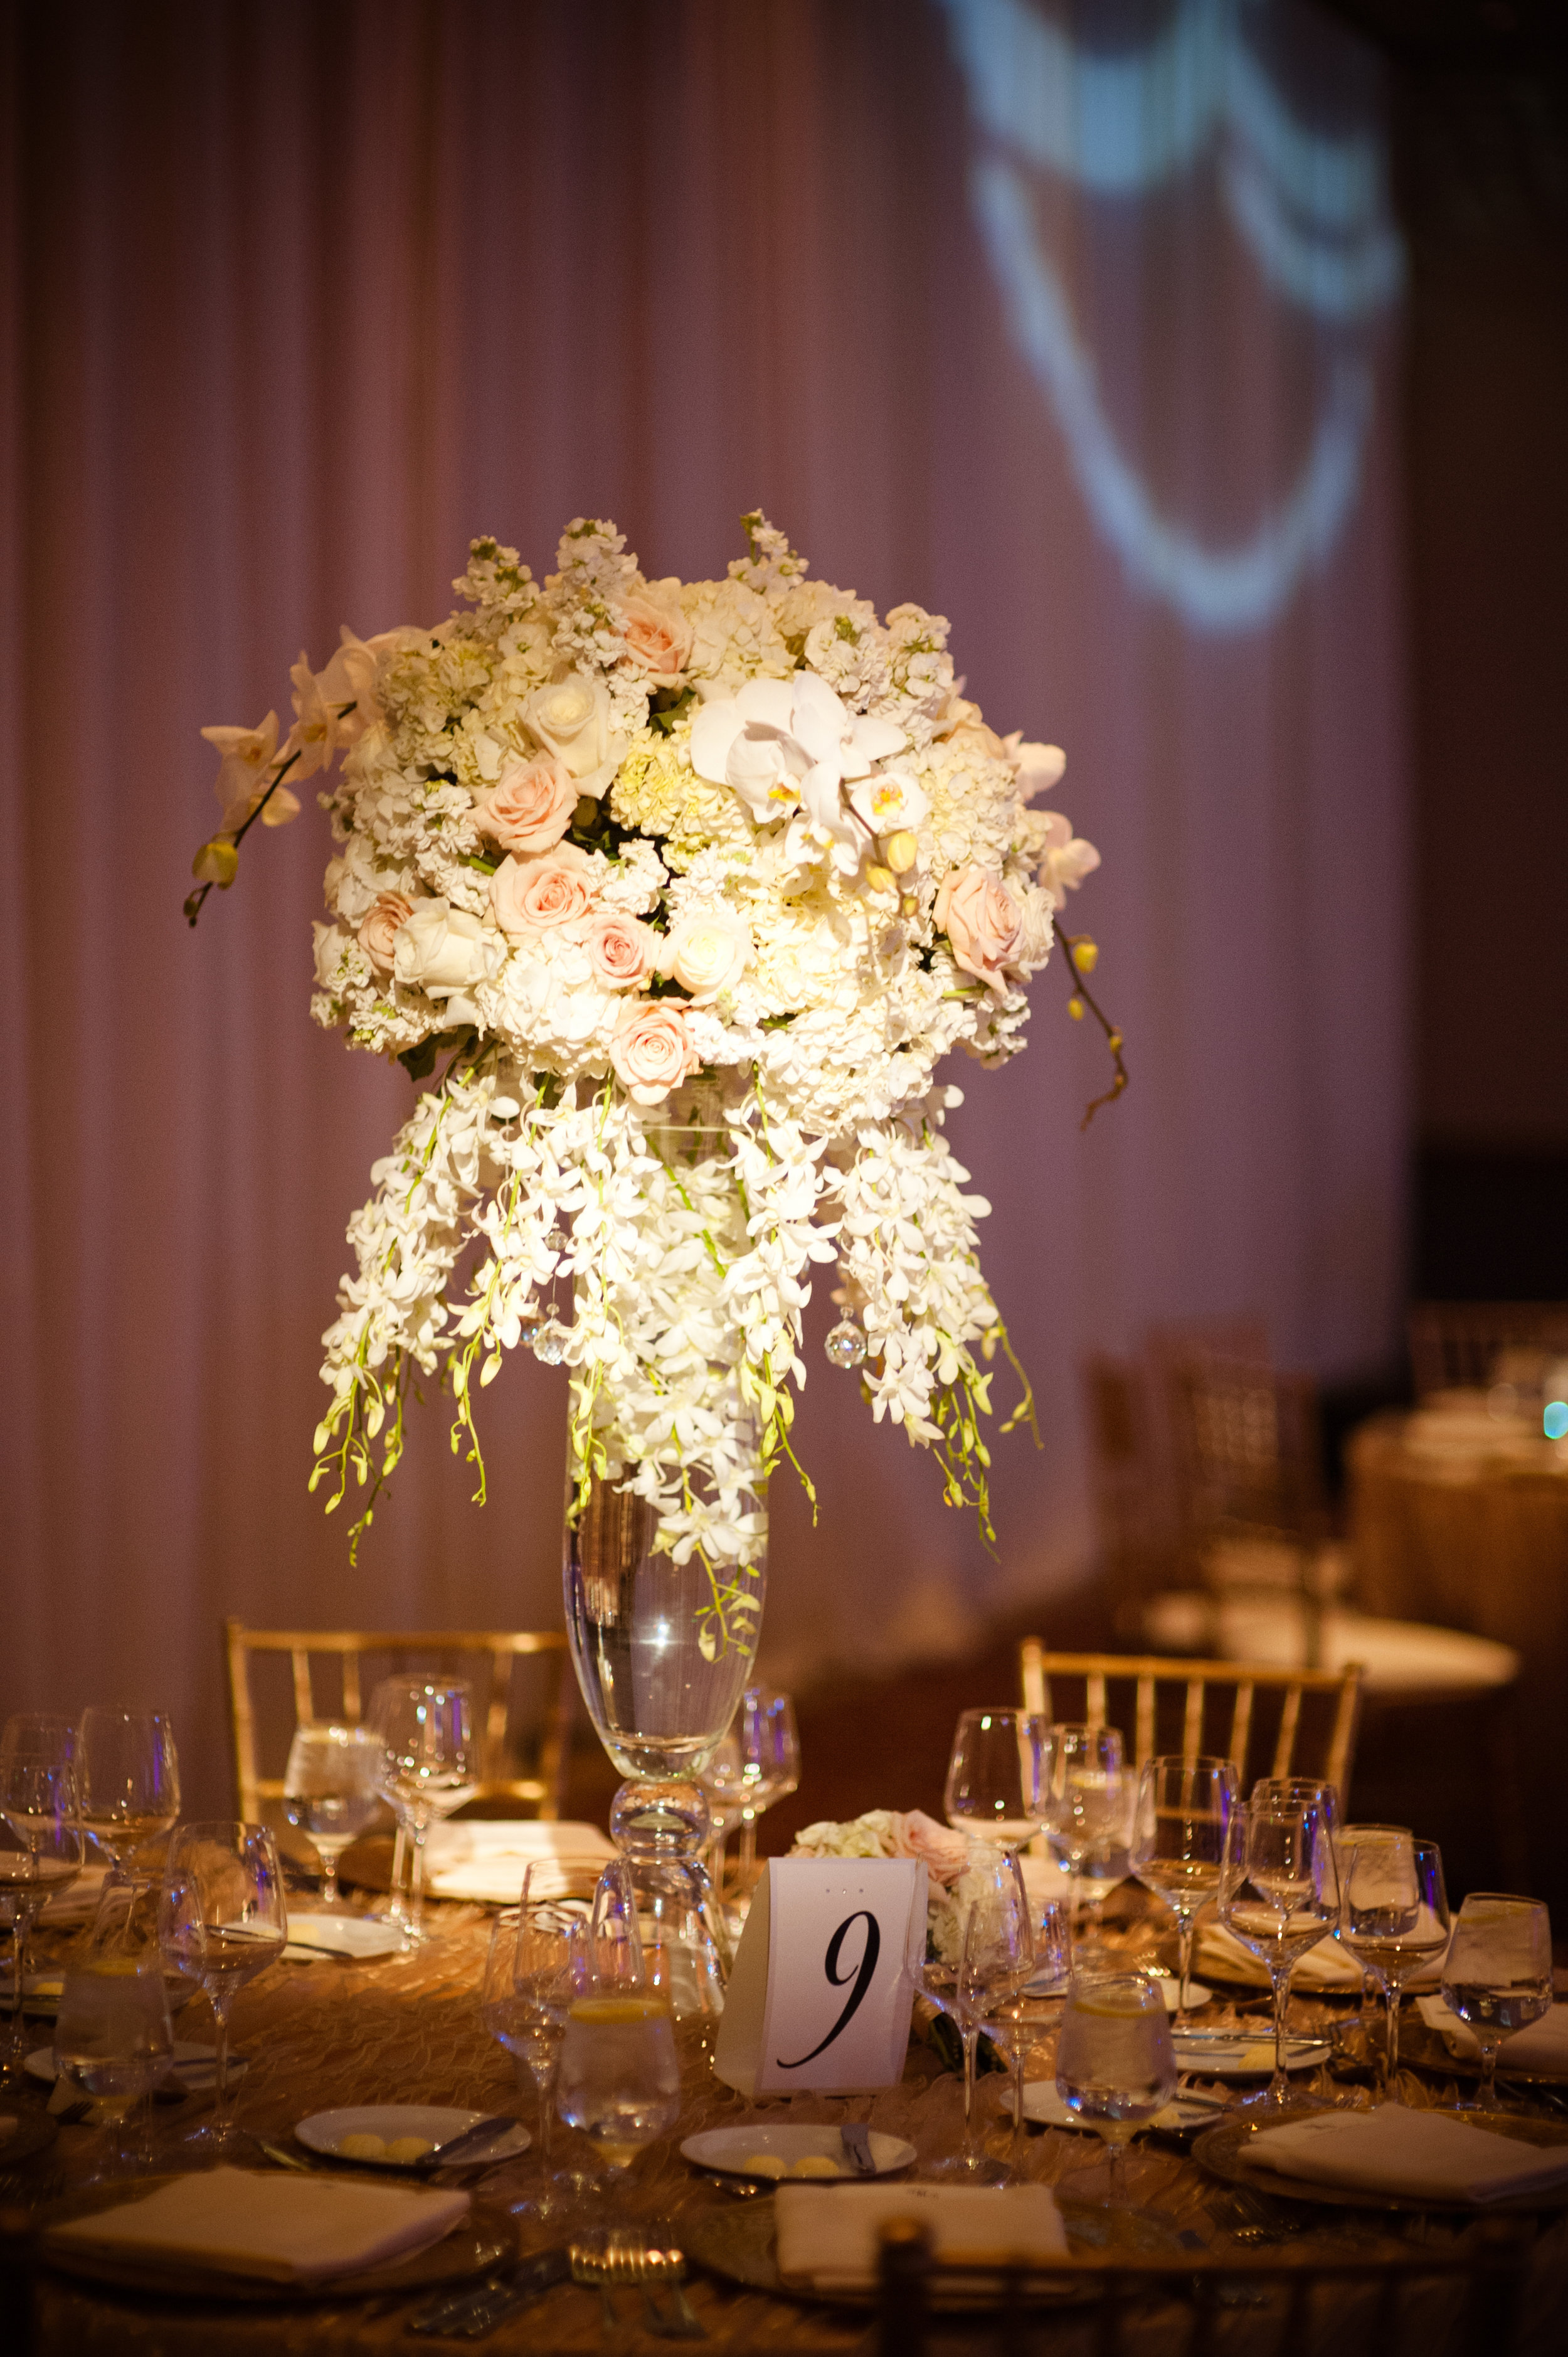 32 tall centerpieces purple and white centerpieces unique centerpieces elegant centerpieces fancy centerpieces Christine Johnson Photography Life Design Events .jpg